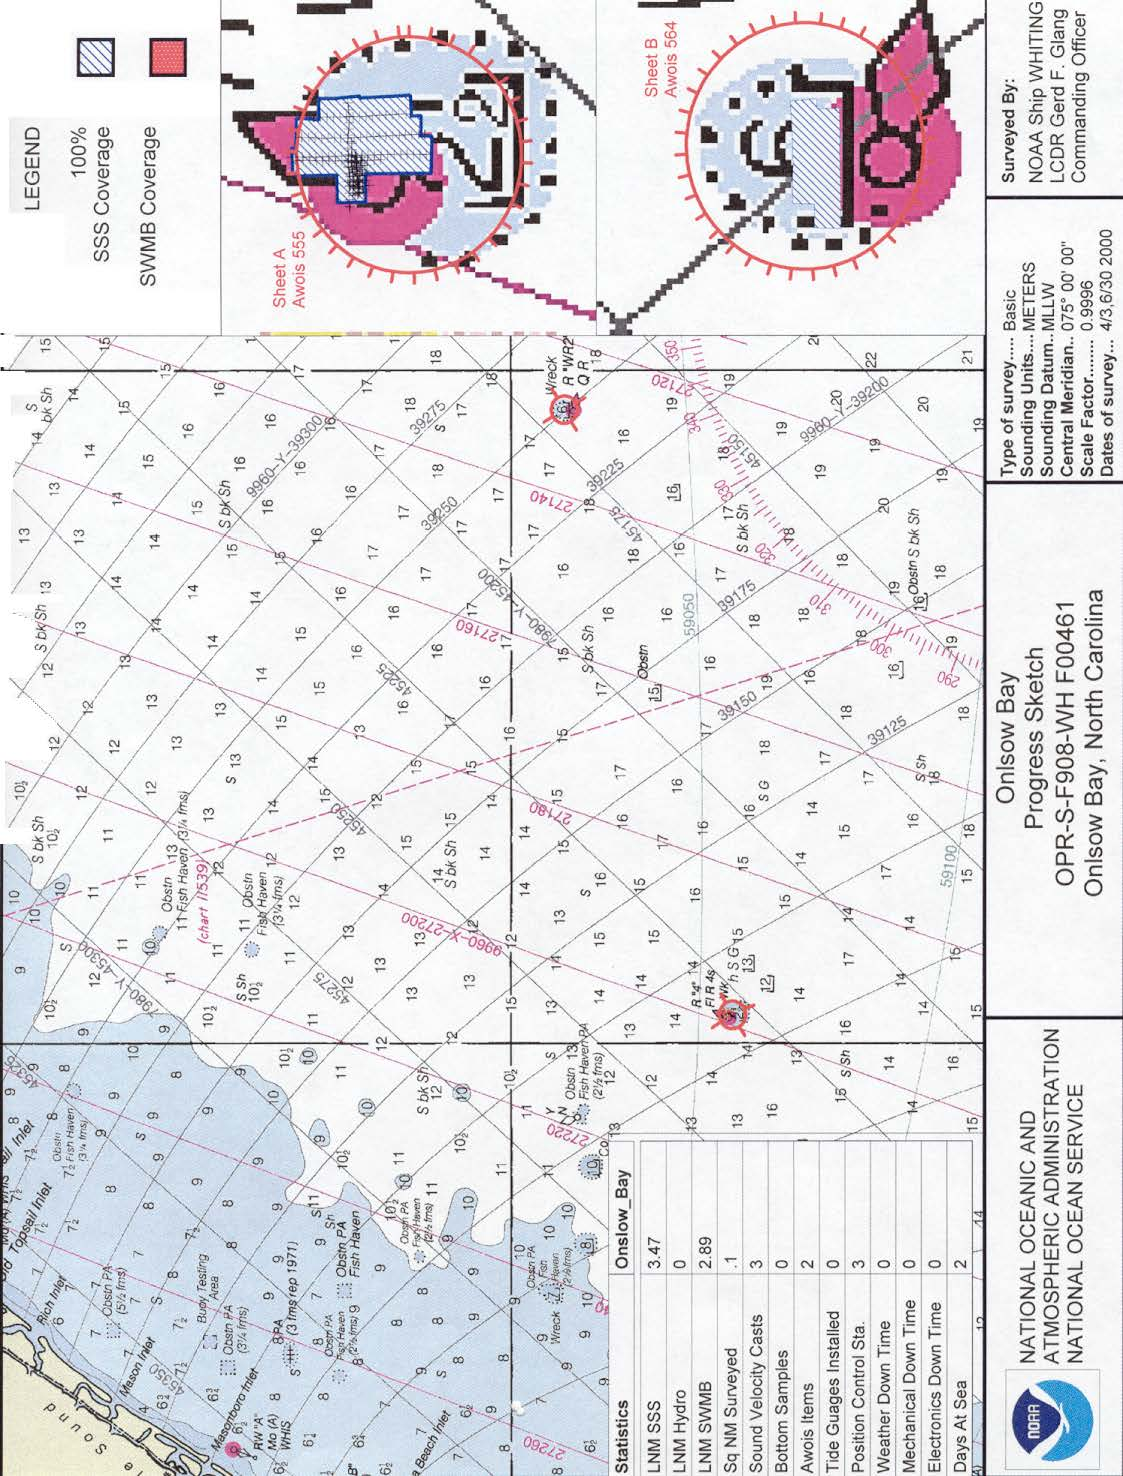 Tide chart beach haven nj image collections free any chart examples barnegat bay tide chart image collections free any chart examples long beach island tide chart image nvjuhfo Gallery